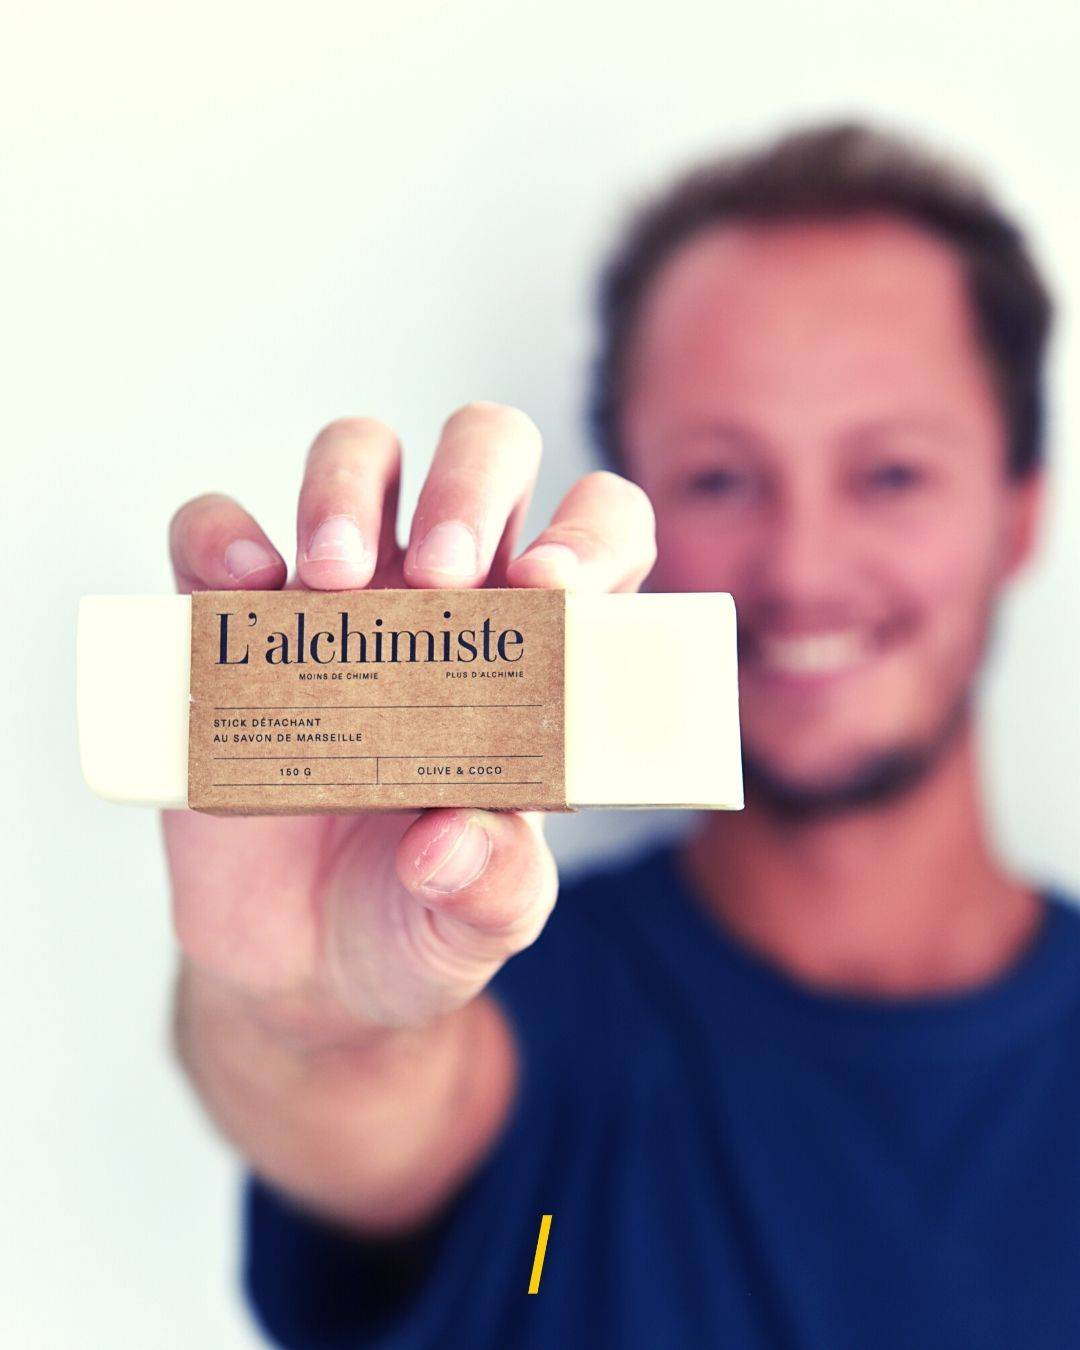 L'alchimiste stick detachant savon marseille